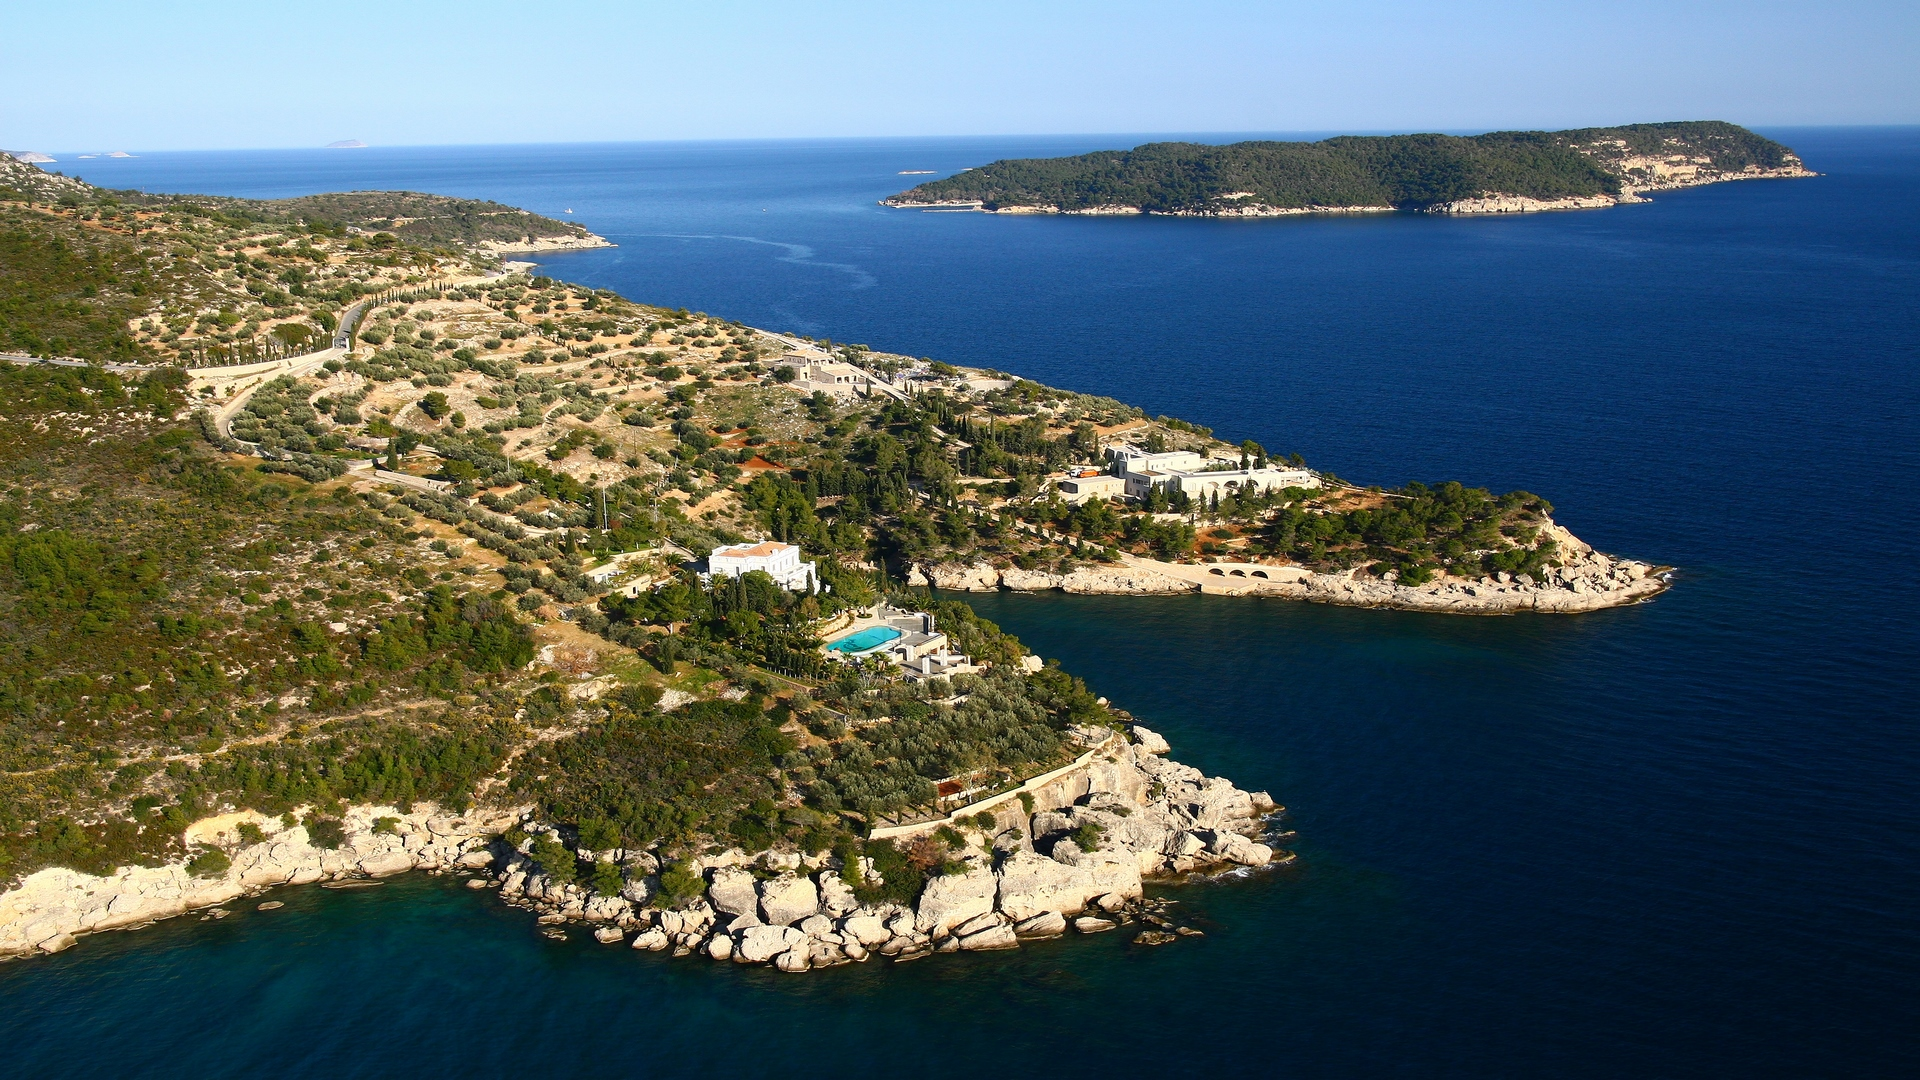 Villa on the island Spetses